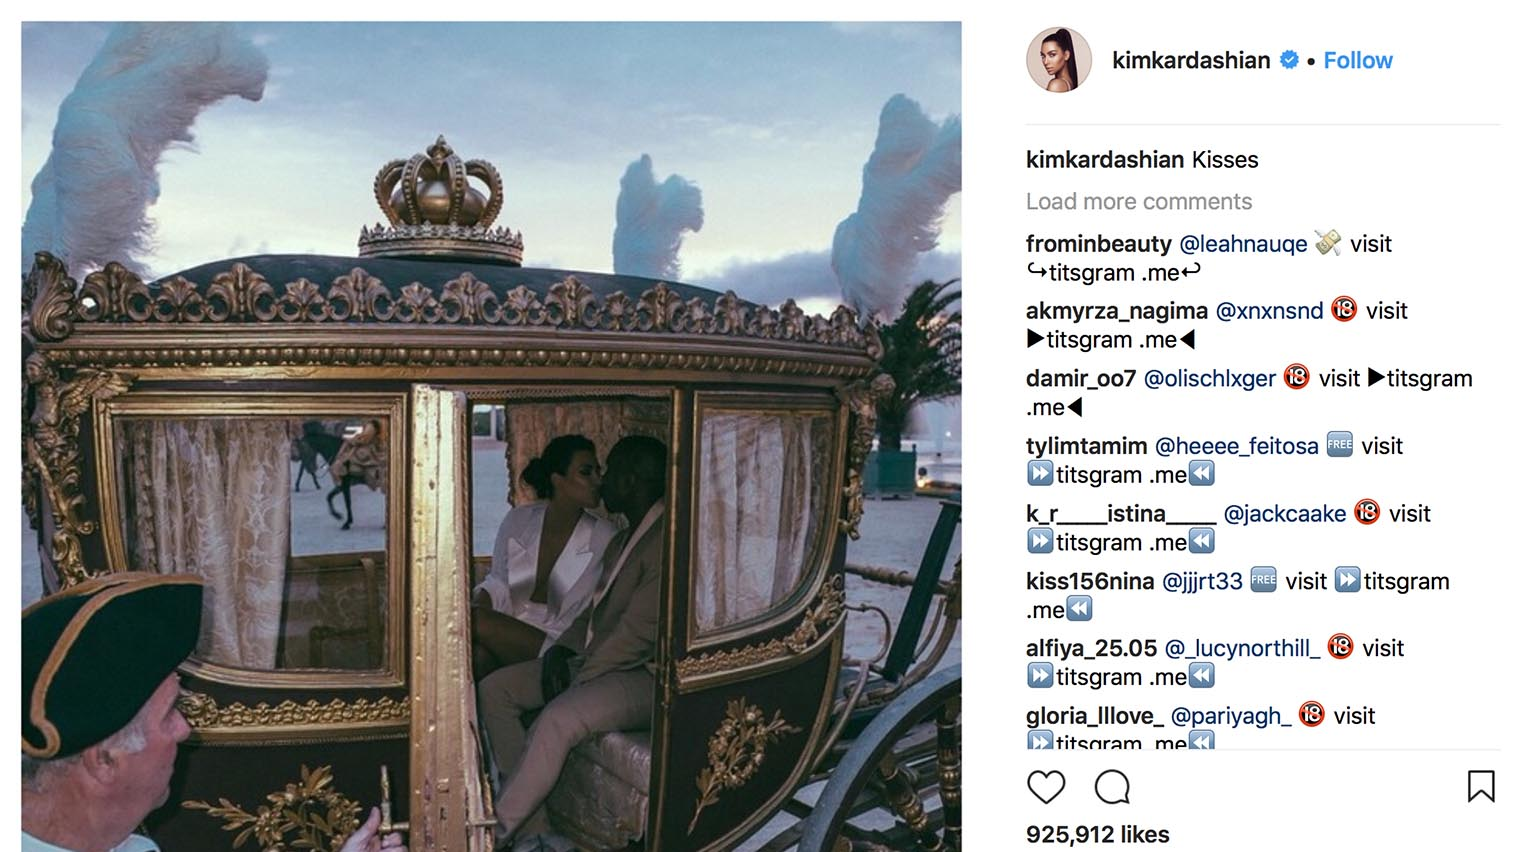 Indonesians Vs Rappers Who Wins At Weddings Junk Asia Like Instagram 100 Real Indonesia Courtesy Of Kimkardashian